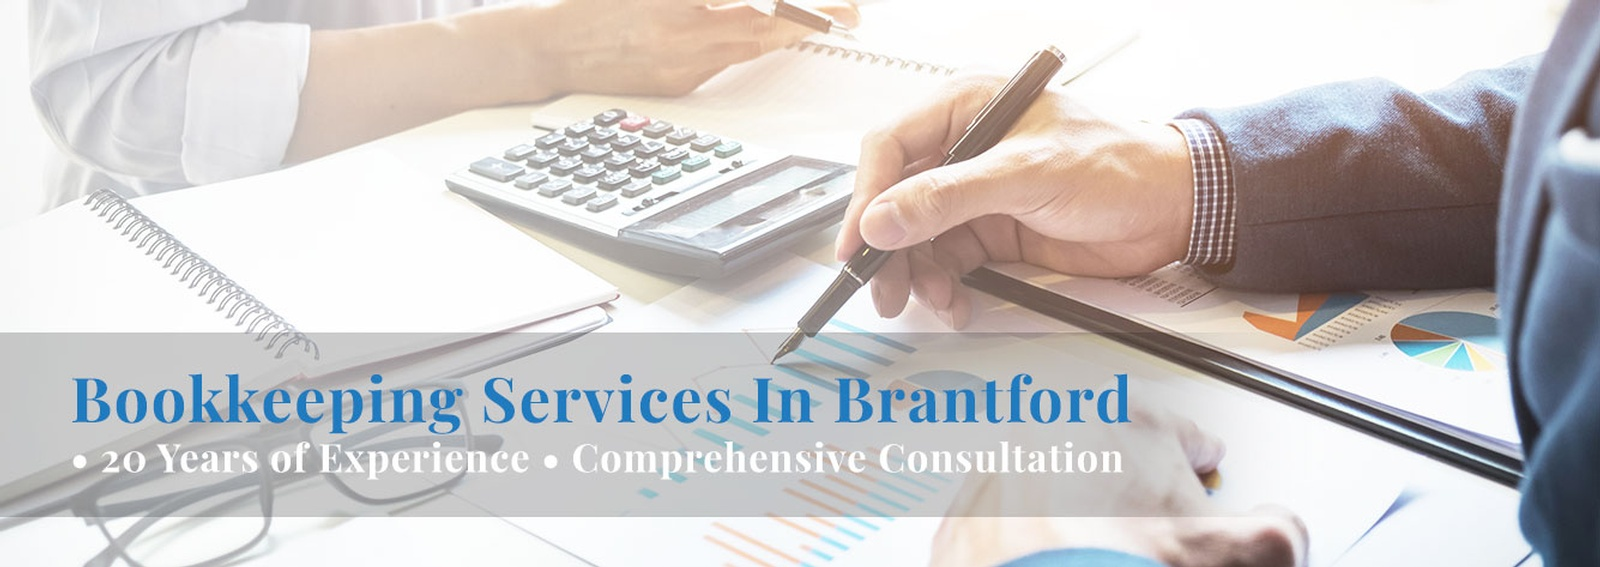 Accounting Services Brantford